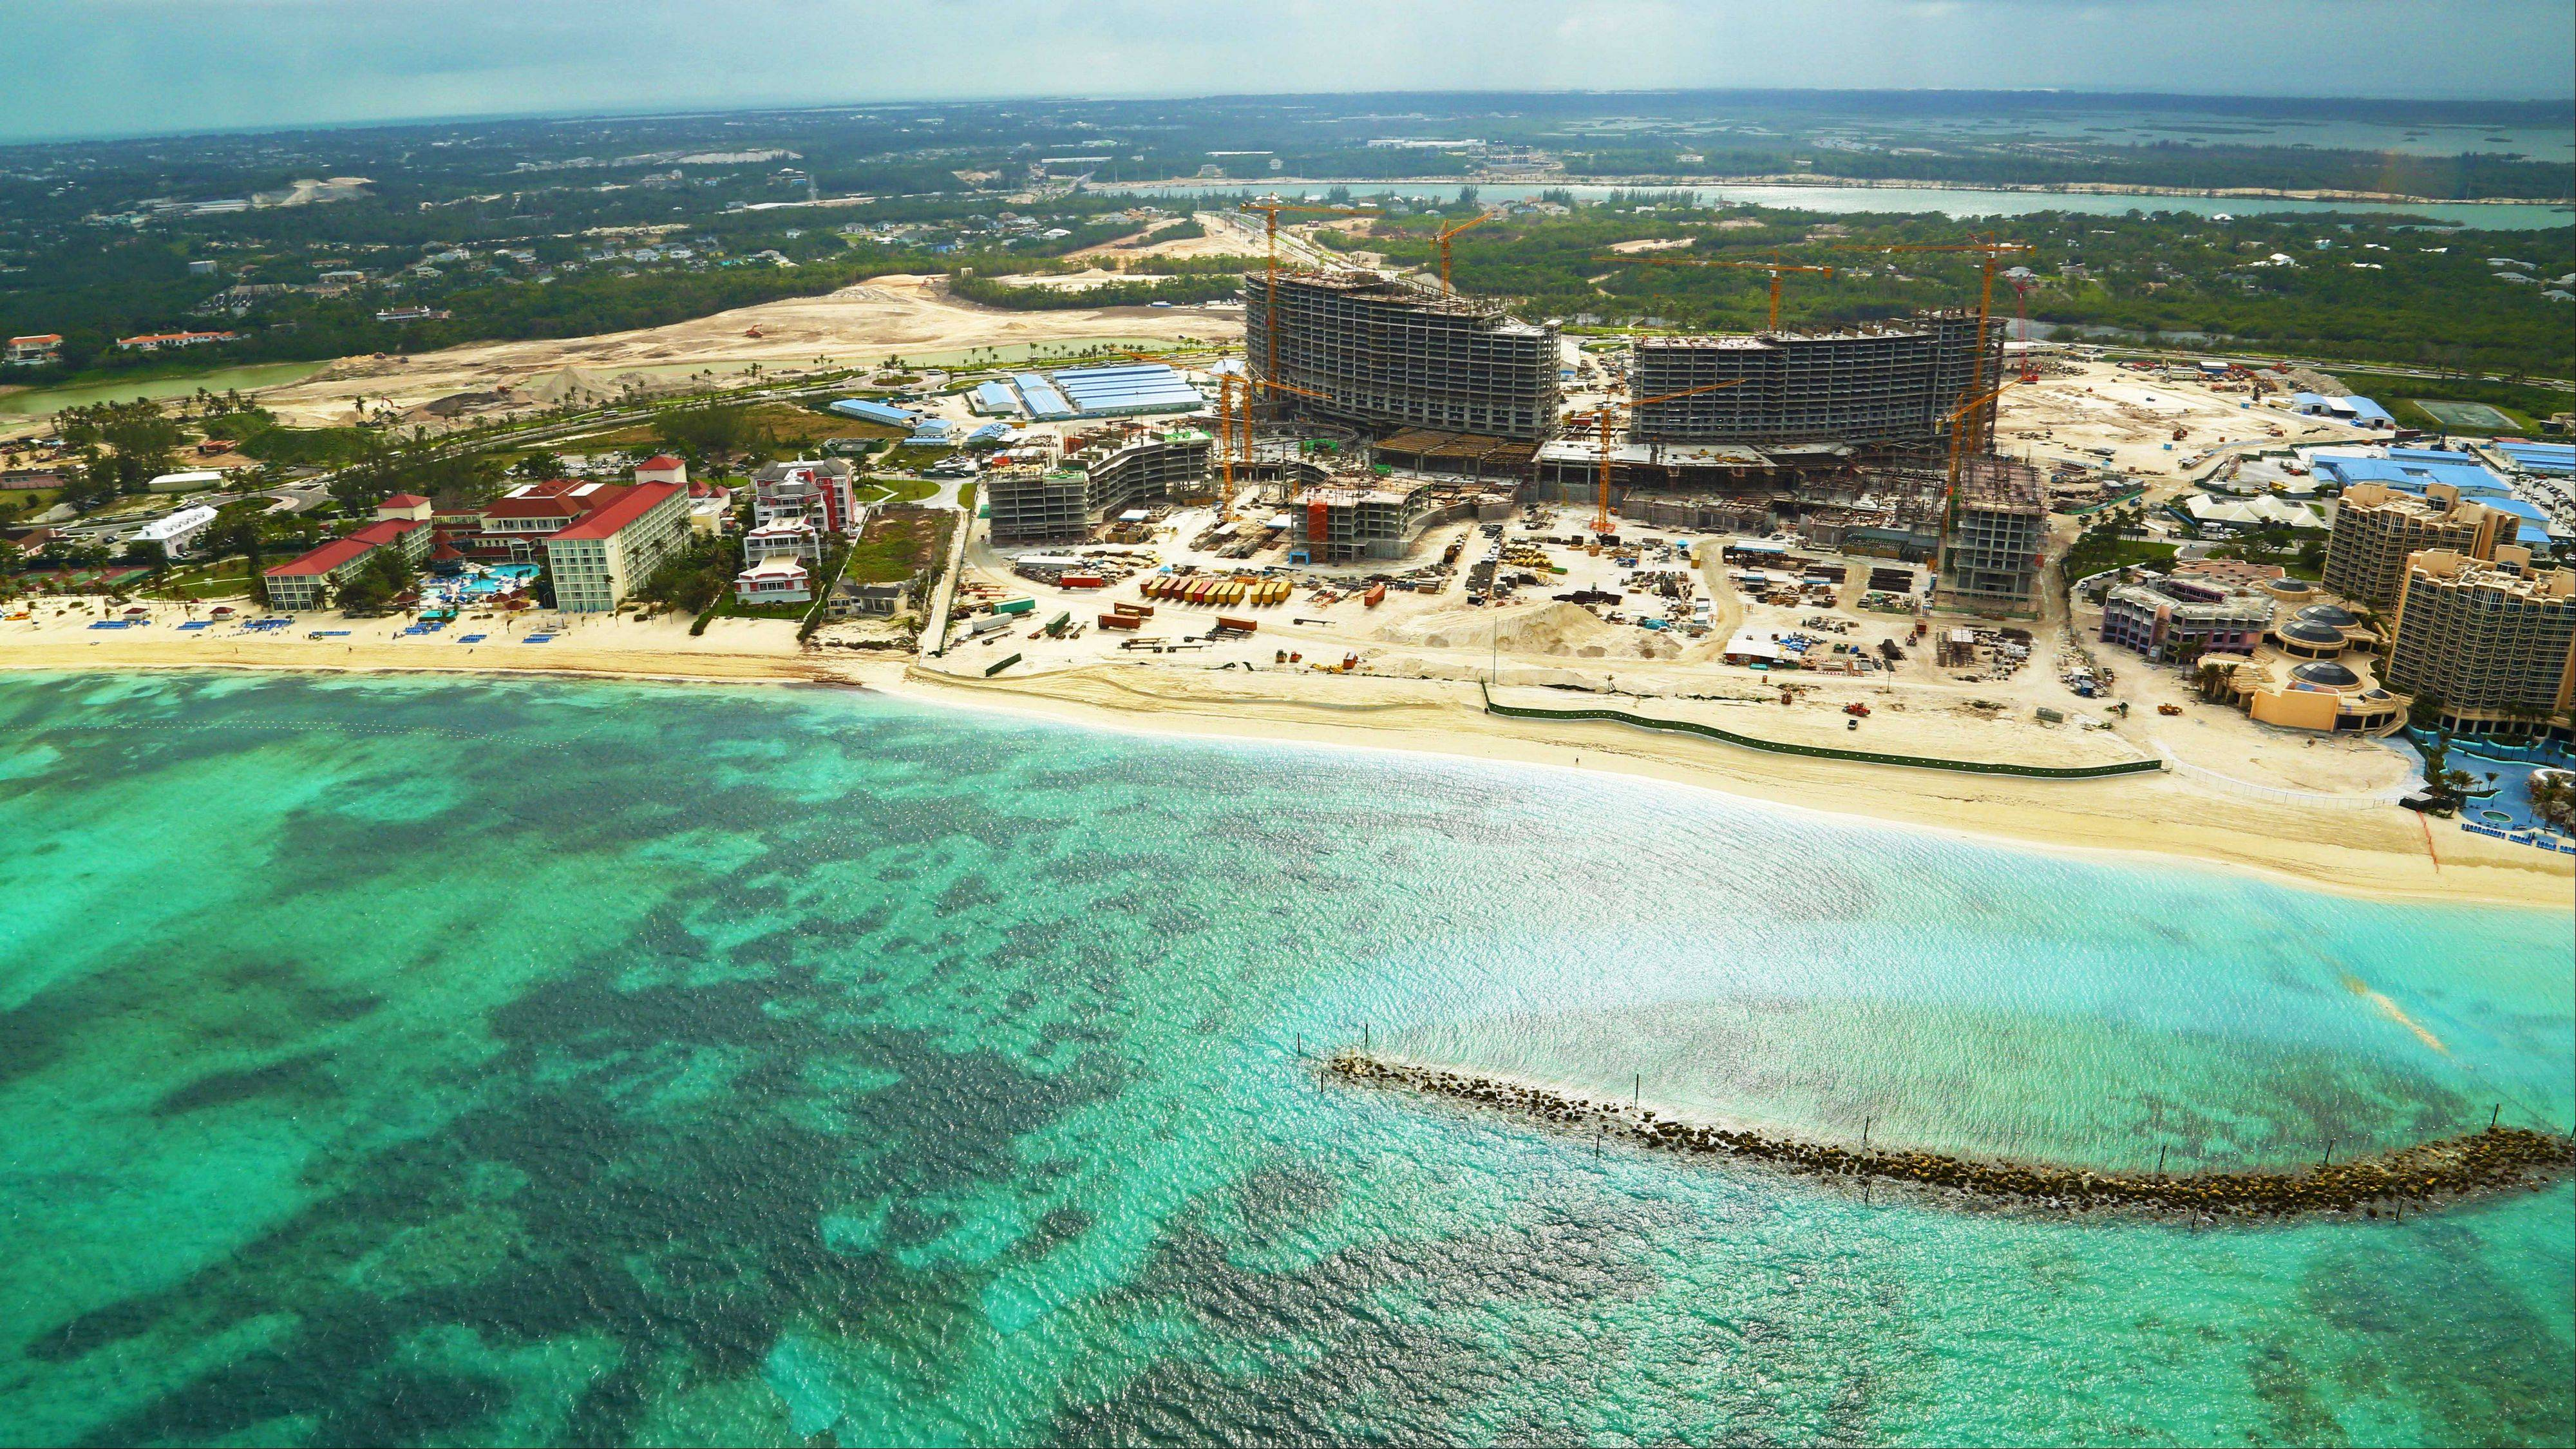 Construction continues on the Baha Mar resort on the beach on New Providence island, Bahamas. For commercial projects such as the Bahamas resort, China is filling a gap left by western investors and bankers retrenching after the 2008 financial crisis.